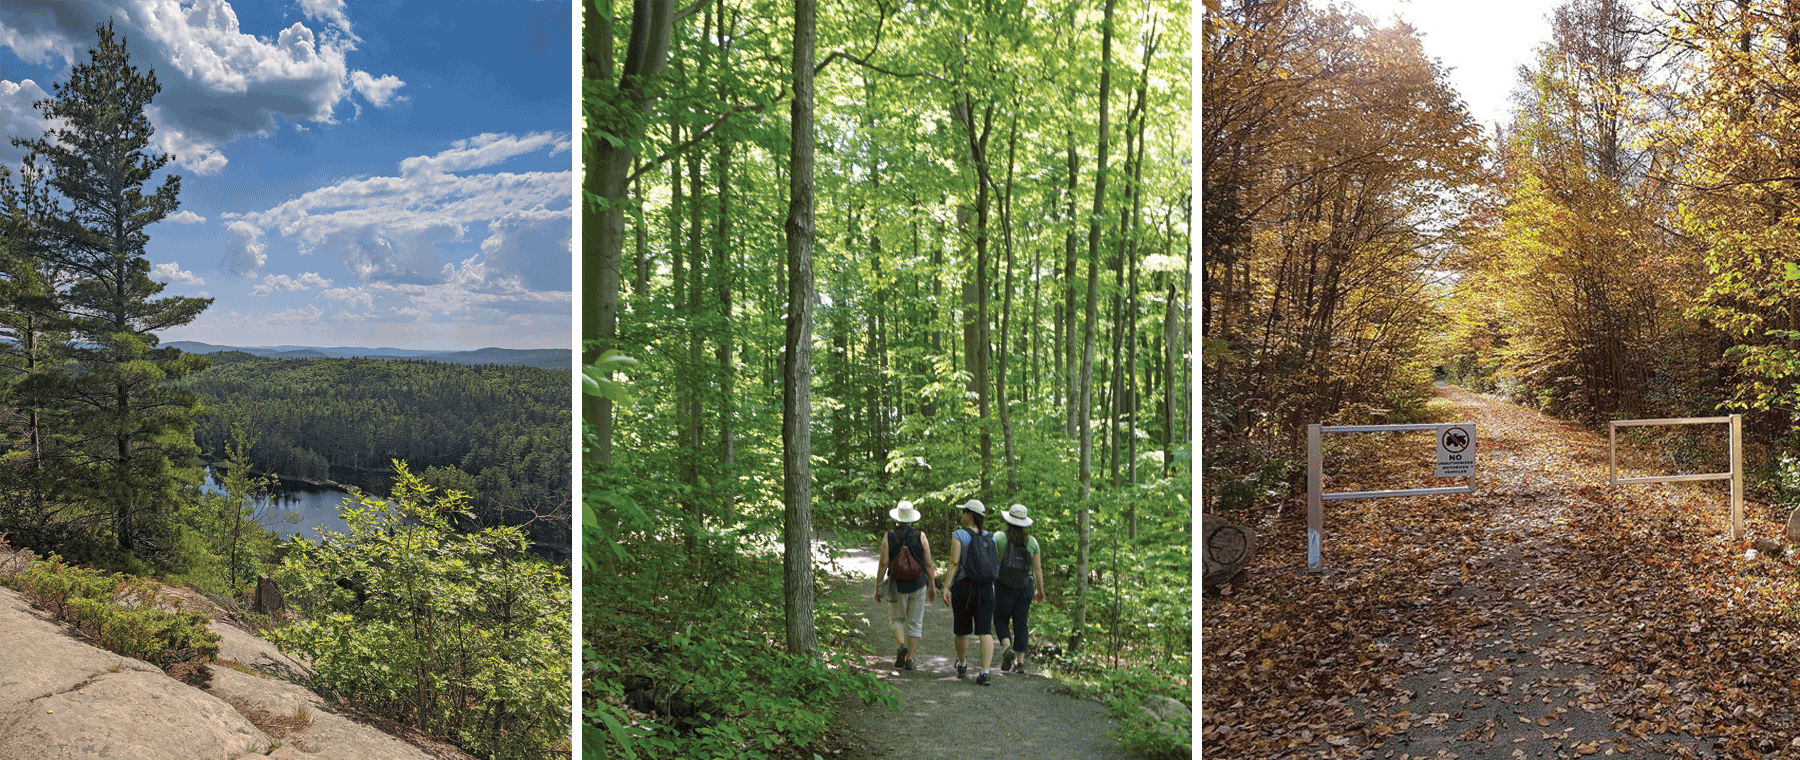 Hikes & Bites: Local trails and cute bakeries